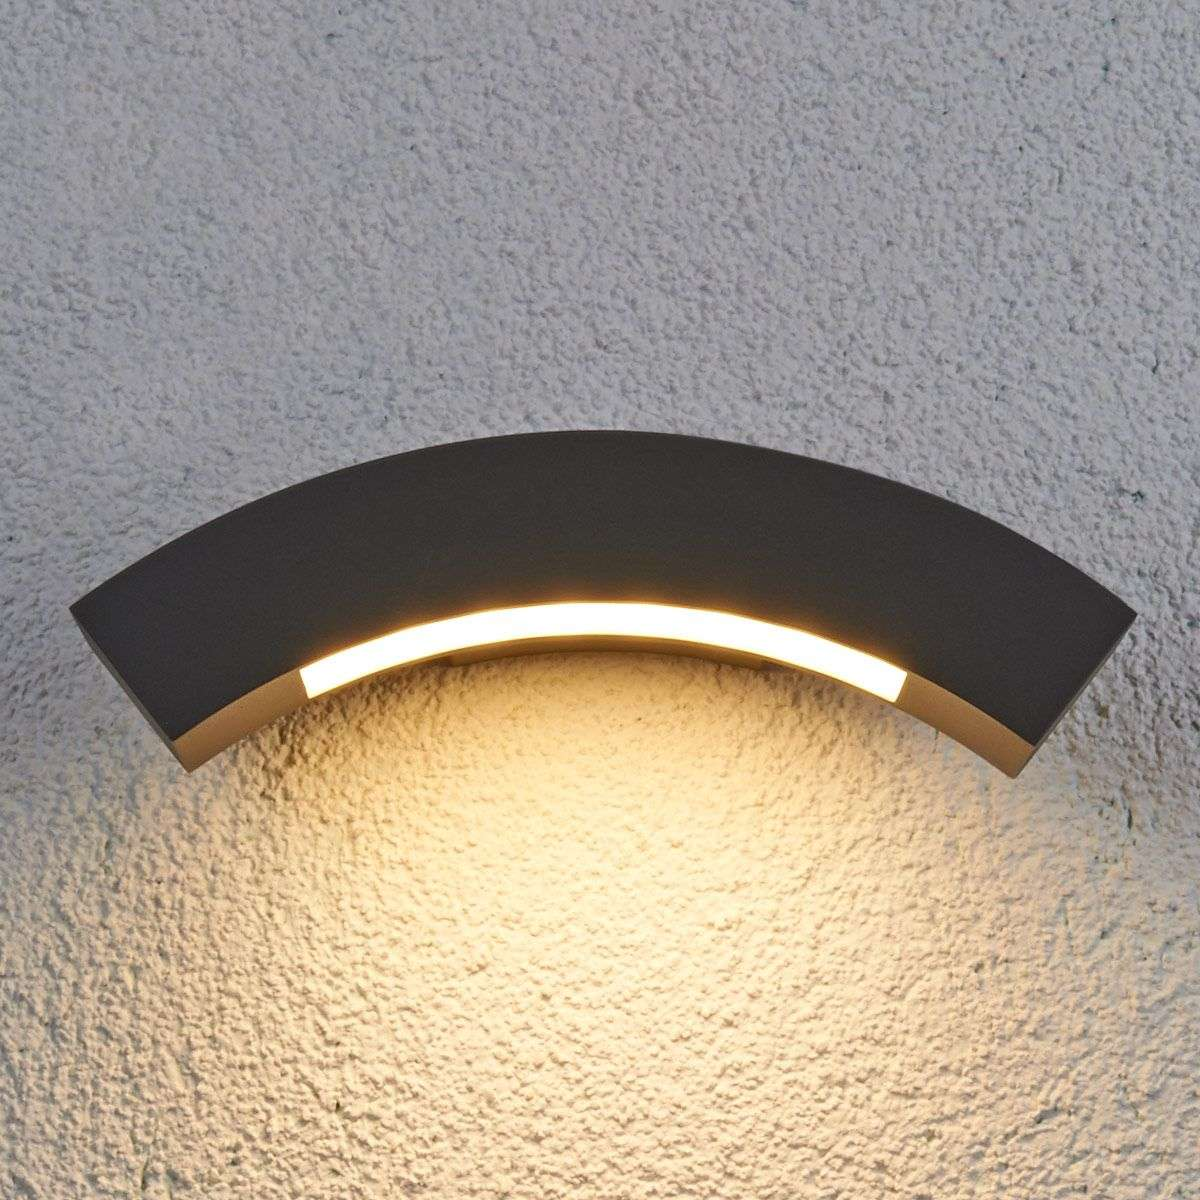 Lennik Curved LED Exterior Wall Lamp | Lights.co.uk